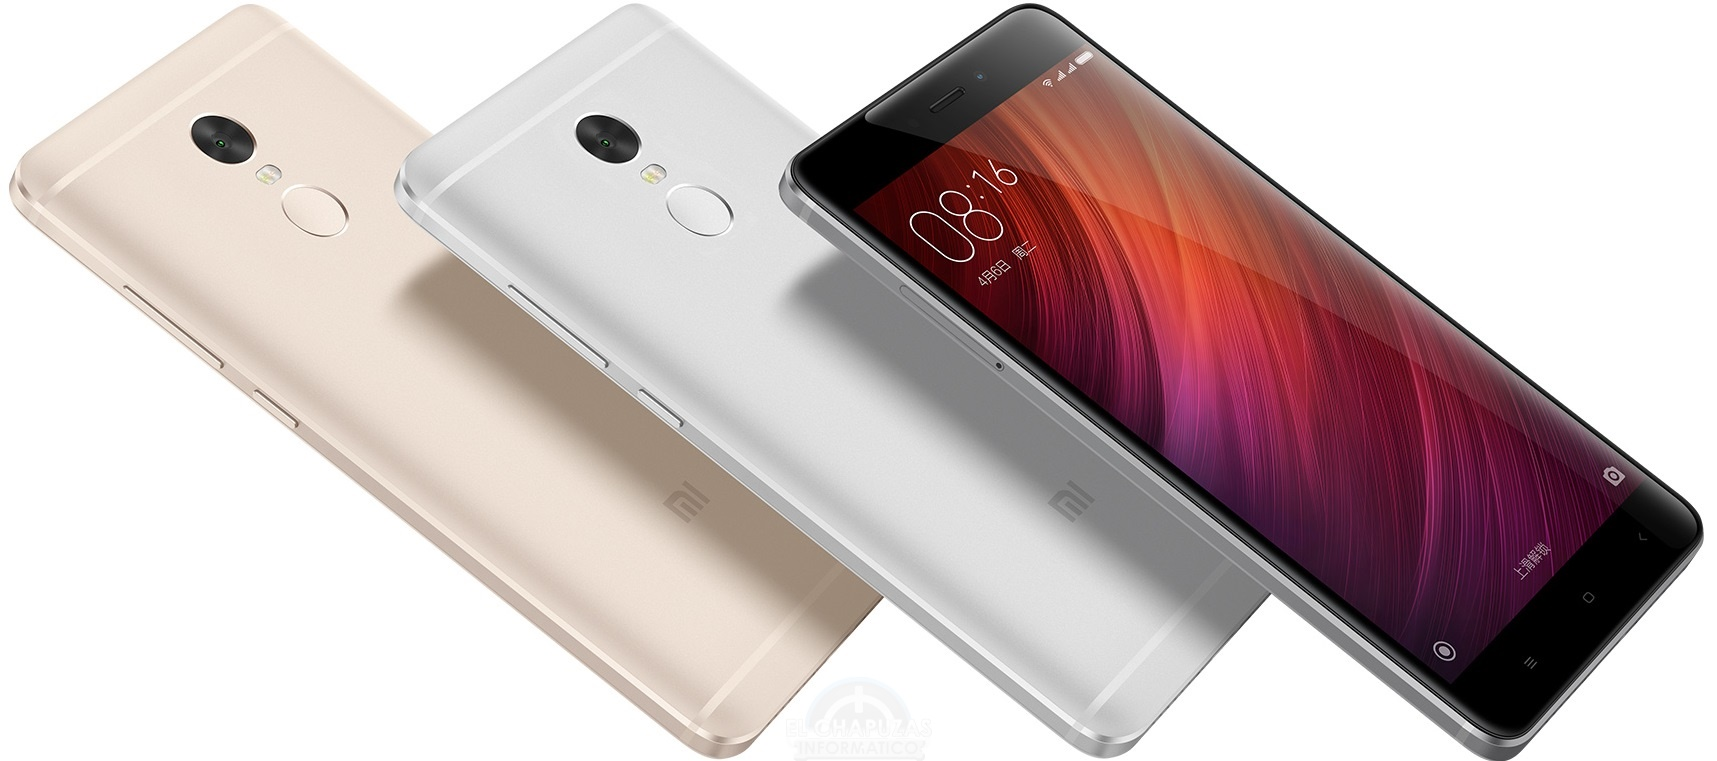 xiaomi redmi note 4 anunciado soc helio x20 y 4100 mah. Black Bedroom Furniture Sets. Home Design Ideas